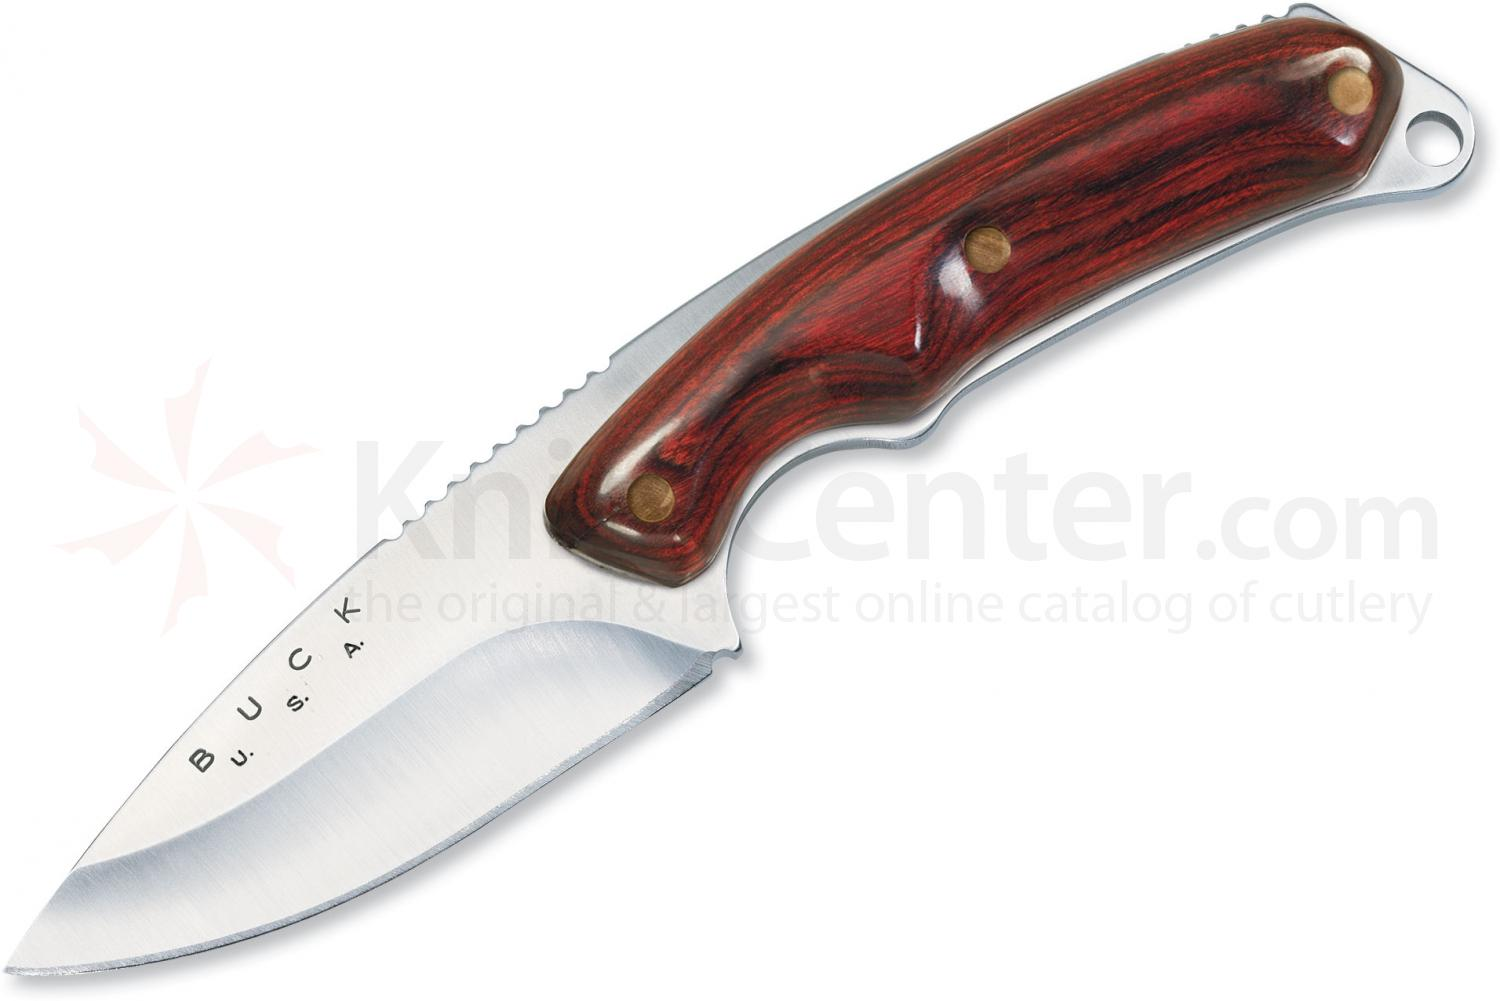 Buck 194 Alpha Hunter Fixed 3-3/4 inch S30V Blade, Rosewood Handles